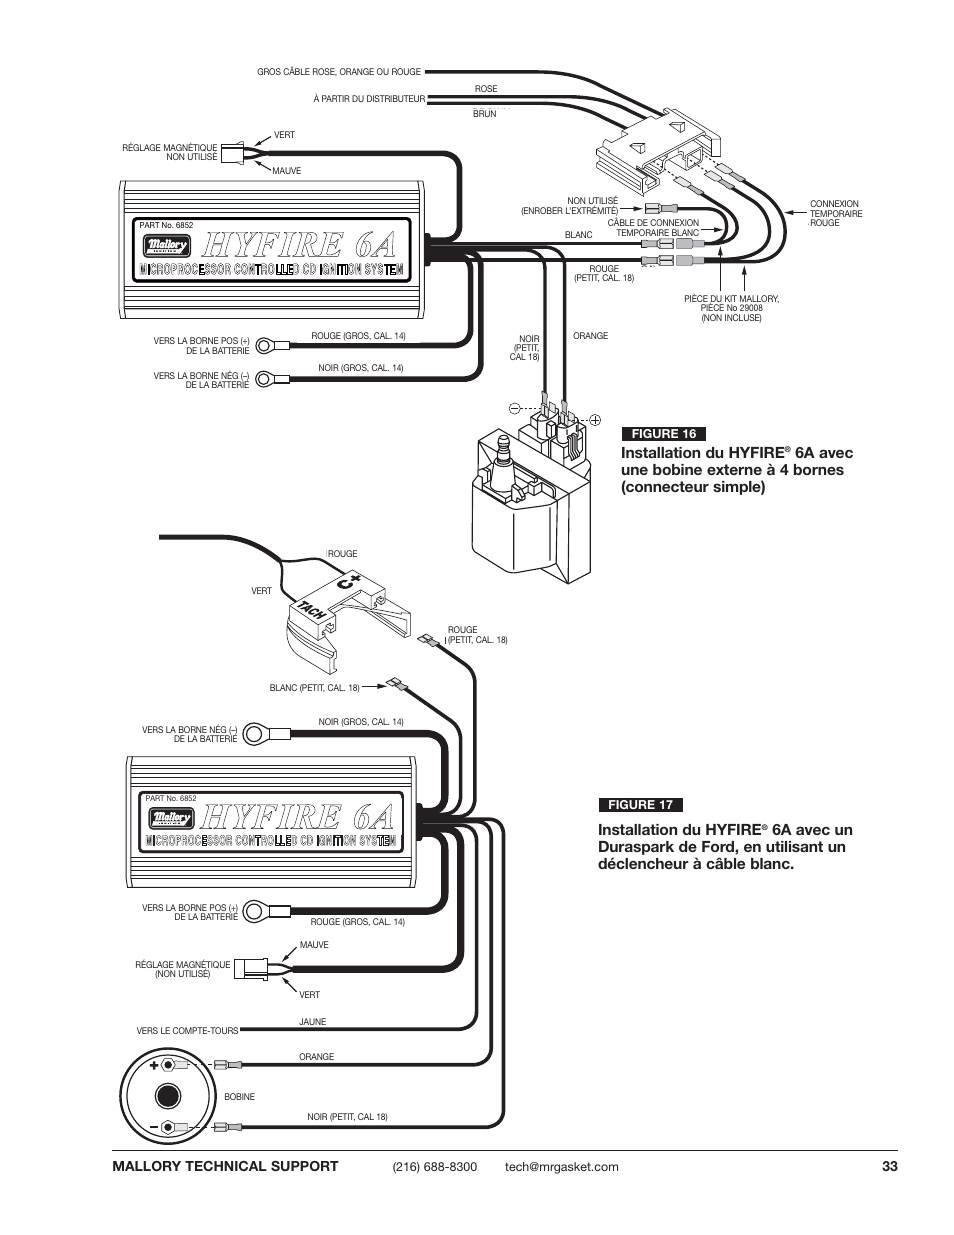 Mallory Pro Comp Distributor Wiring Diagram Auto Electrical 1995 Ford Xl 4 9 Engine Harness For A 2010 Dodge Ram 1500 2001 7 3 Liter 2003 350 Fuse